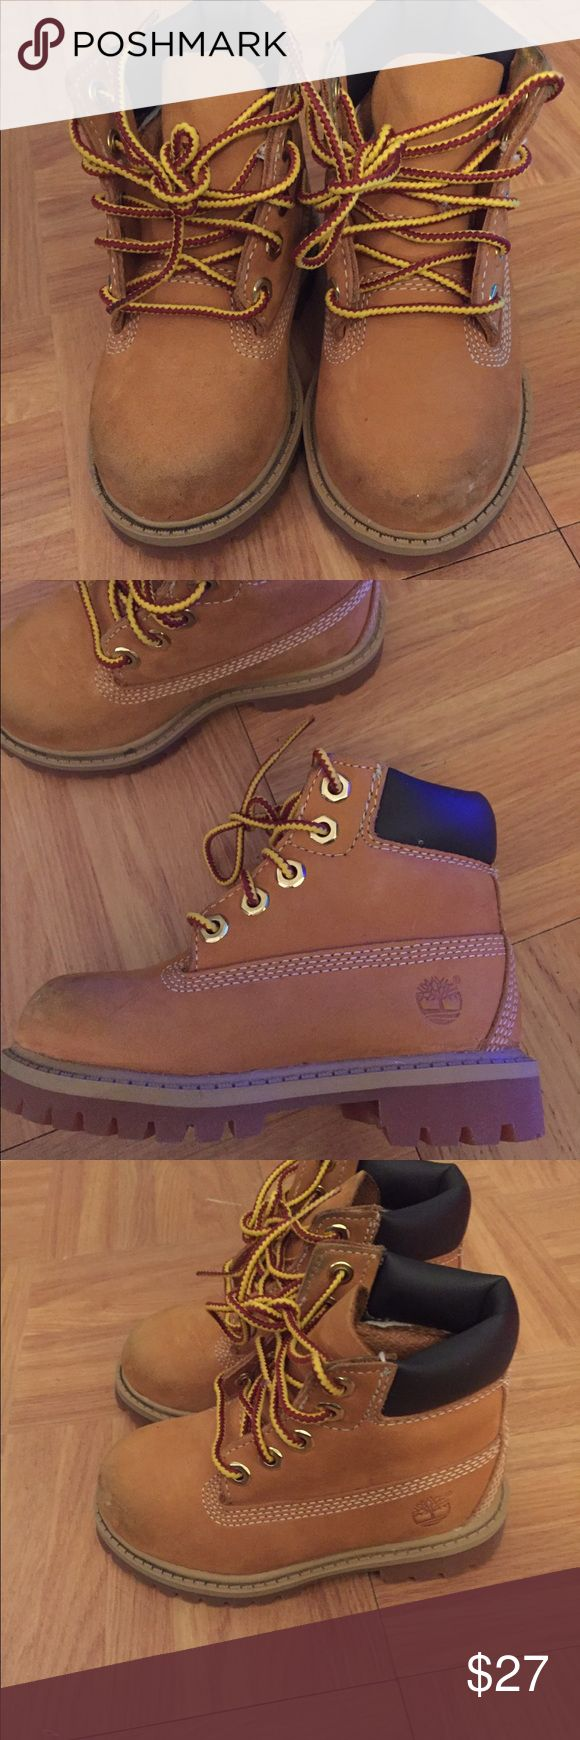 Toddler boots Toddler timberland boots a few scuffs in the front Timberland Shoes Boots